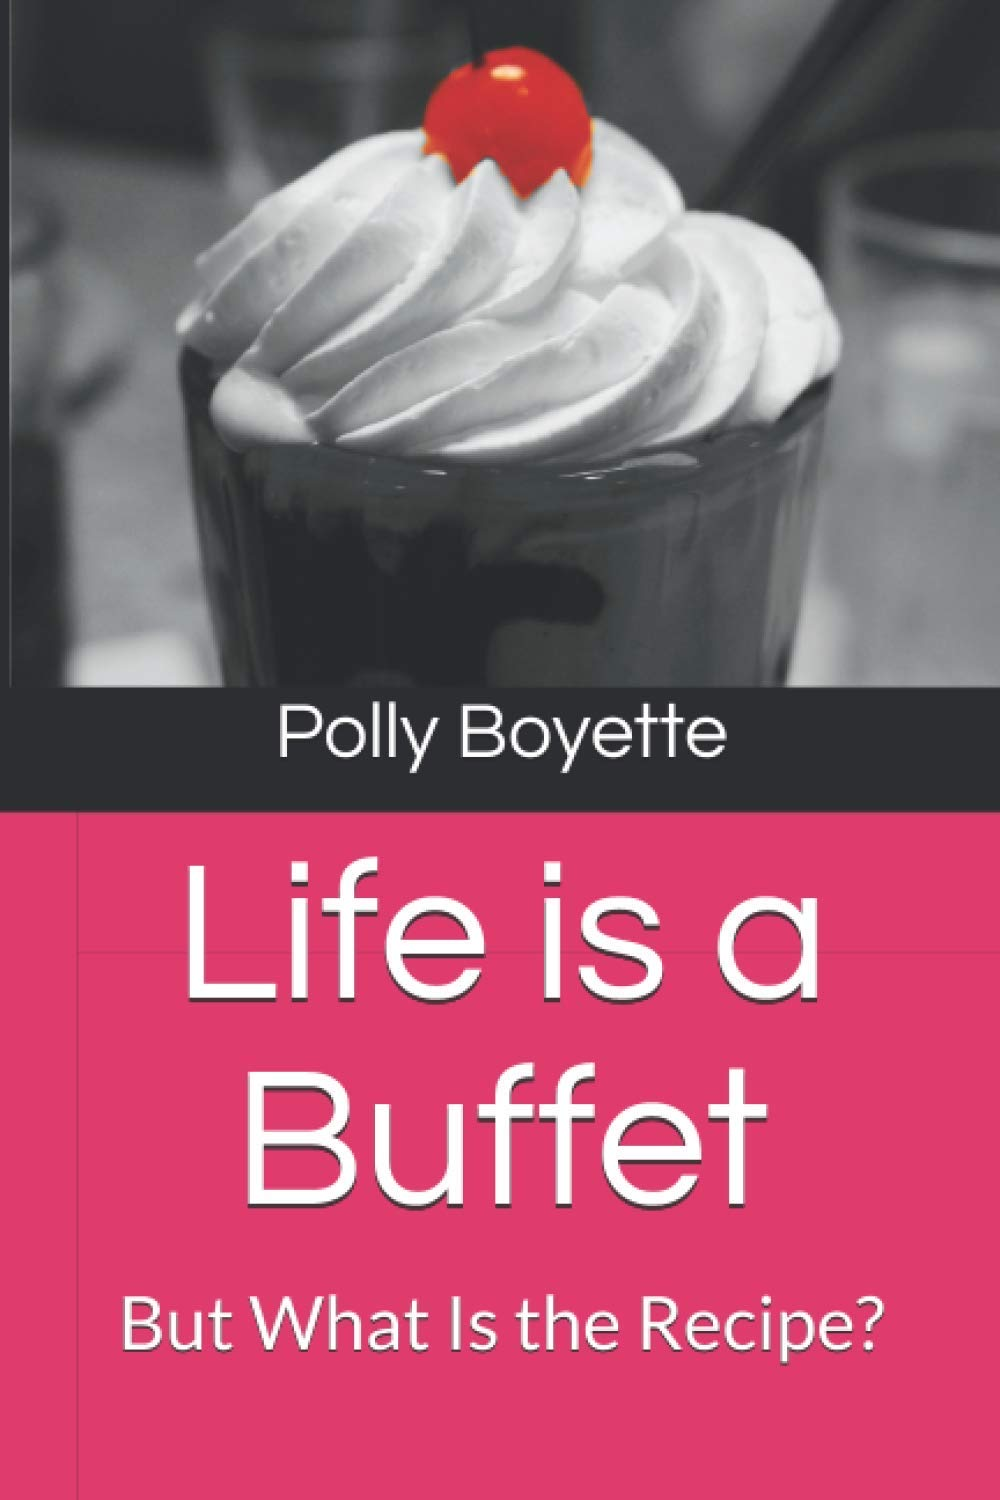 Polly's latest book!